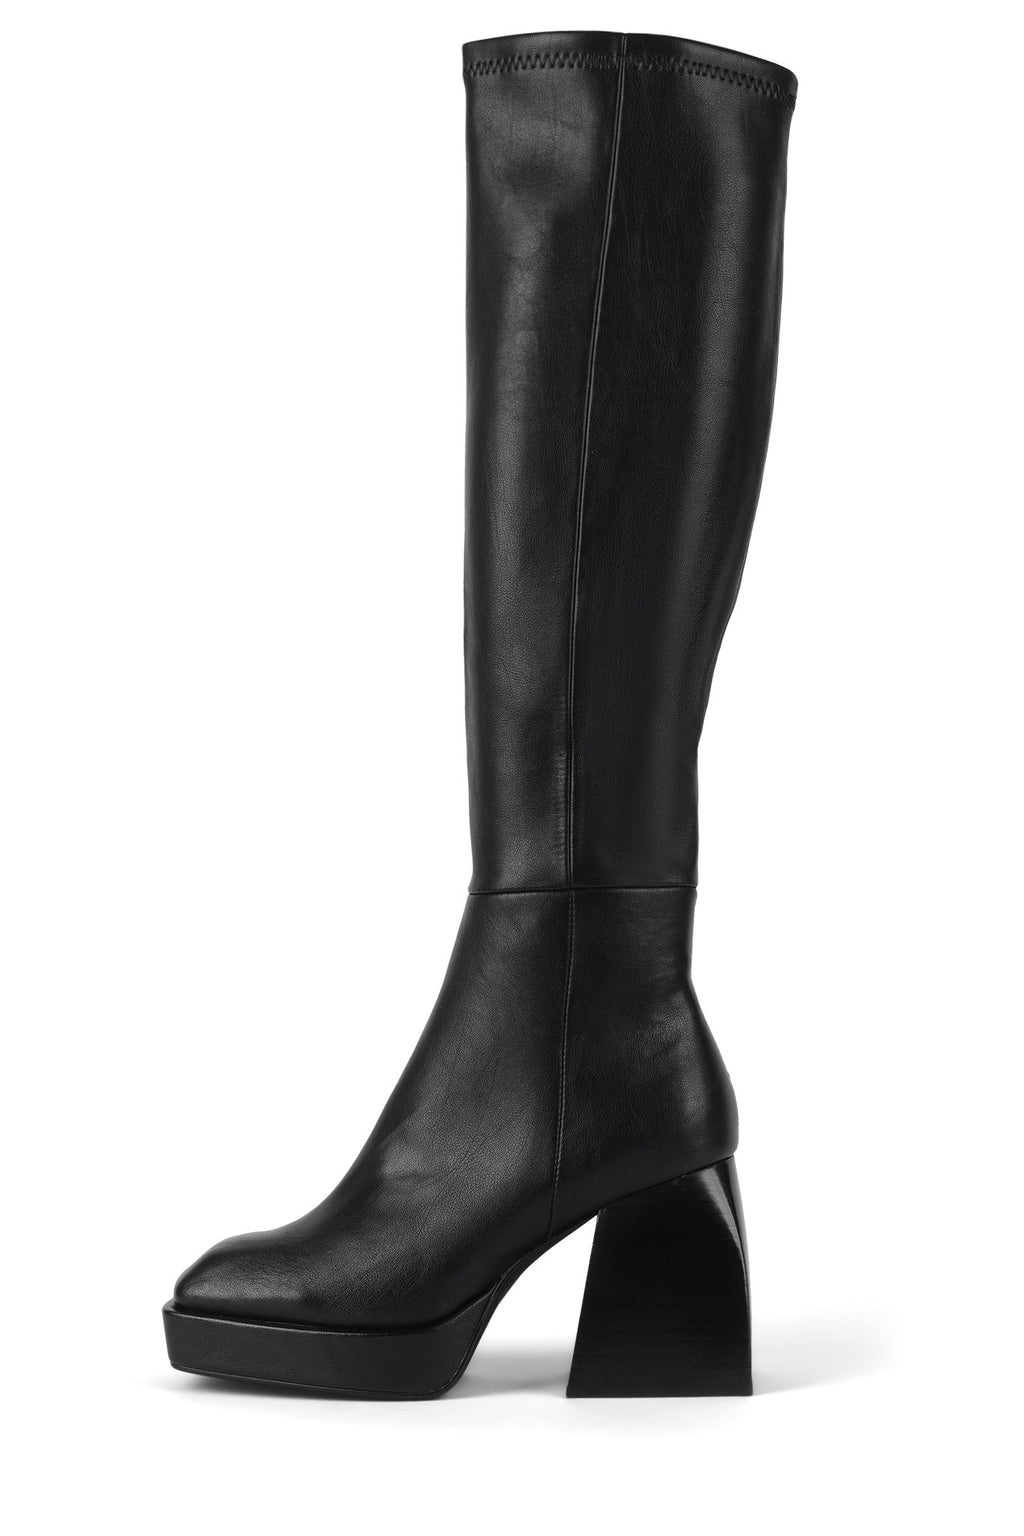 DAUPHIN Knee-High Boot STRATEGY Black 6